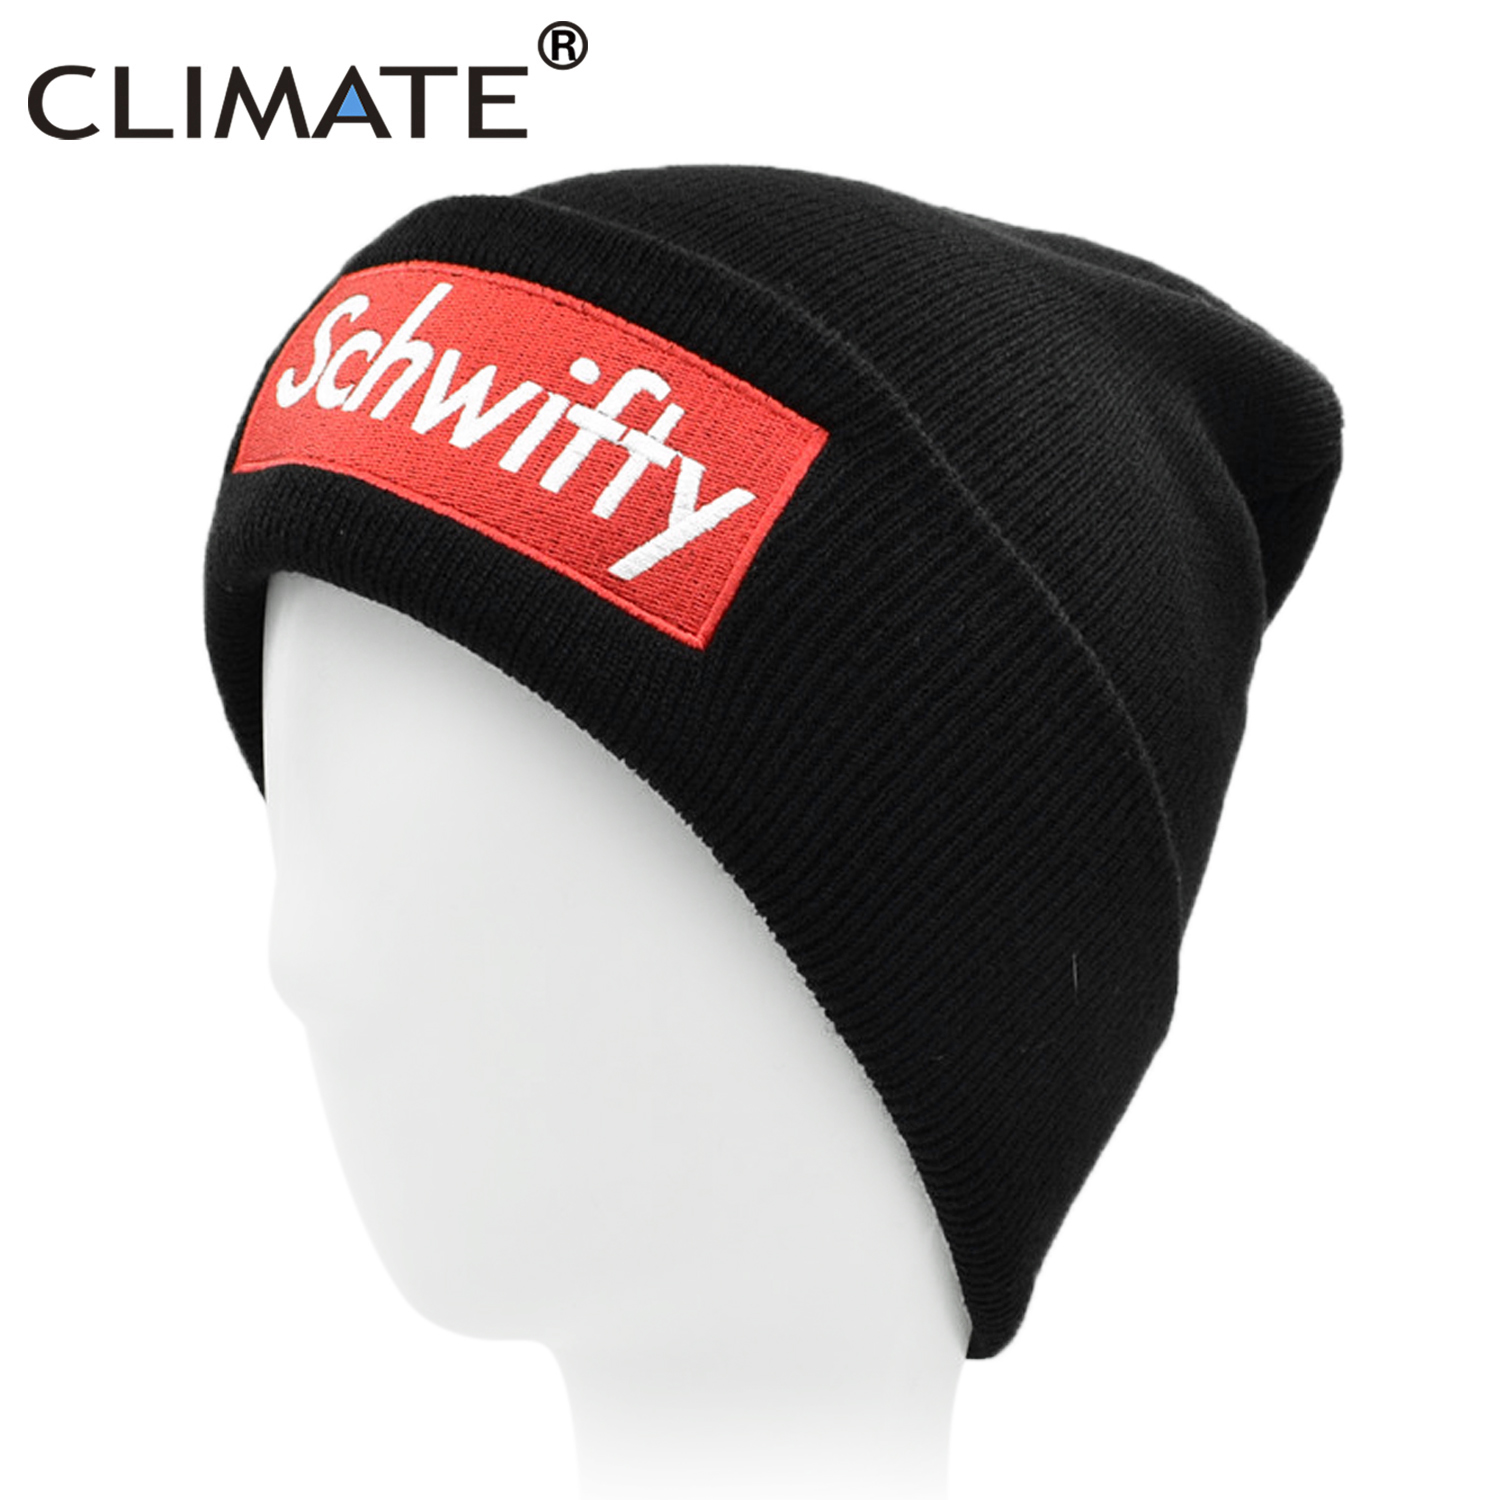 66f9642215d CLIMATE Beanie Rick and Morty Hat SCHWIFTY Logo Winter Beanie Skullies Men  Women Warm Knit Black Hat Caps for Men Women Youth